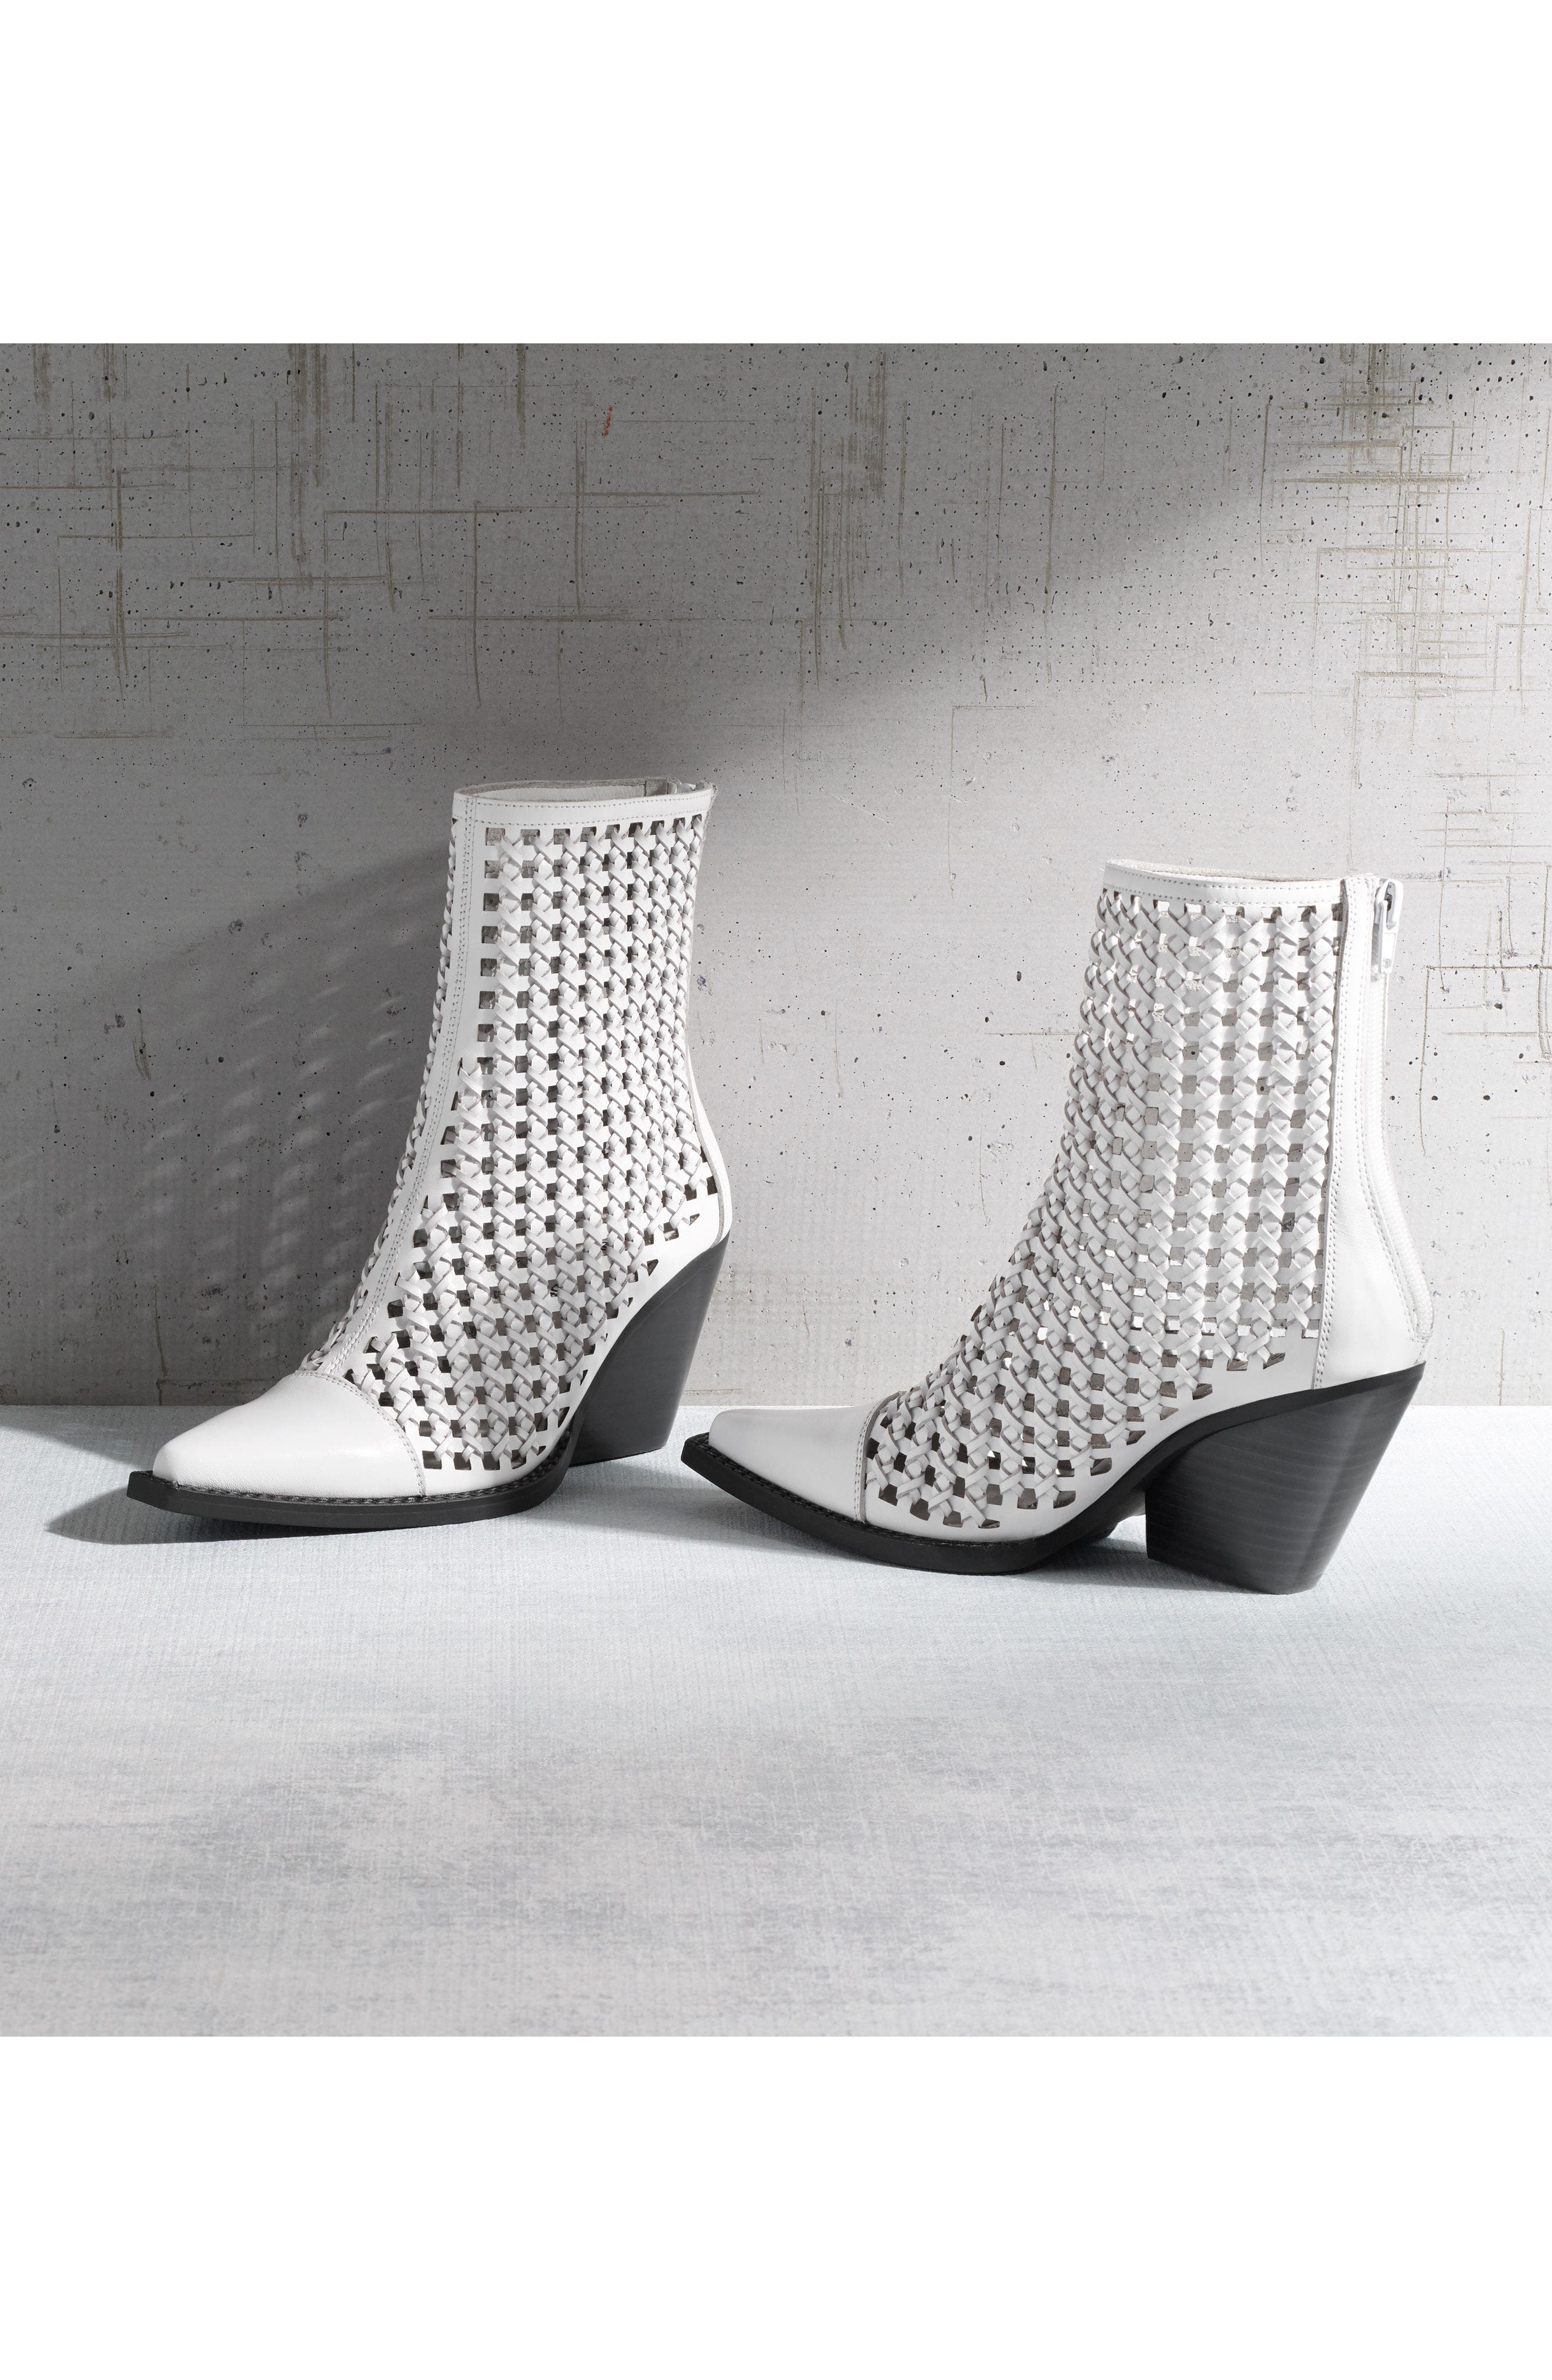 Waven Woven Bootie,                             Alternate thumbnail 8, color,                             WHITE LEATHER